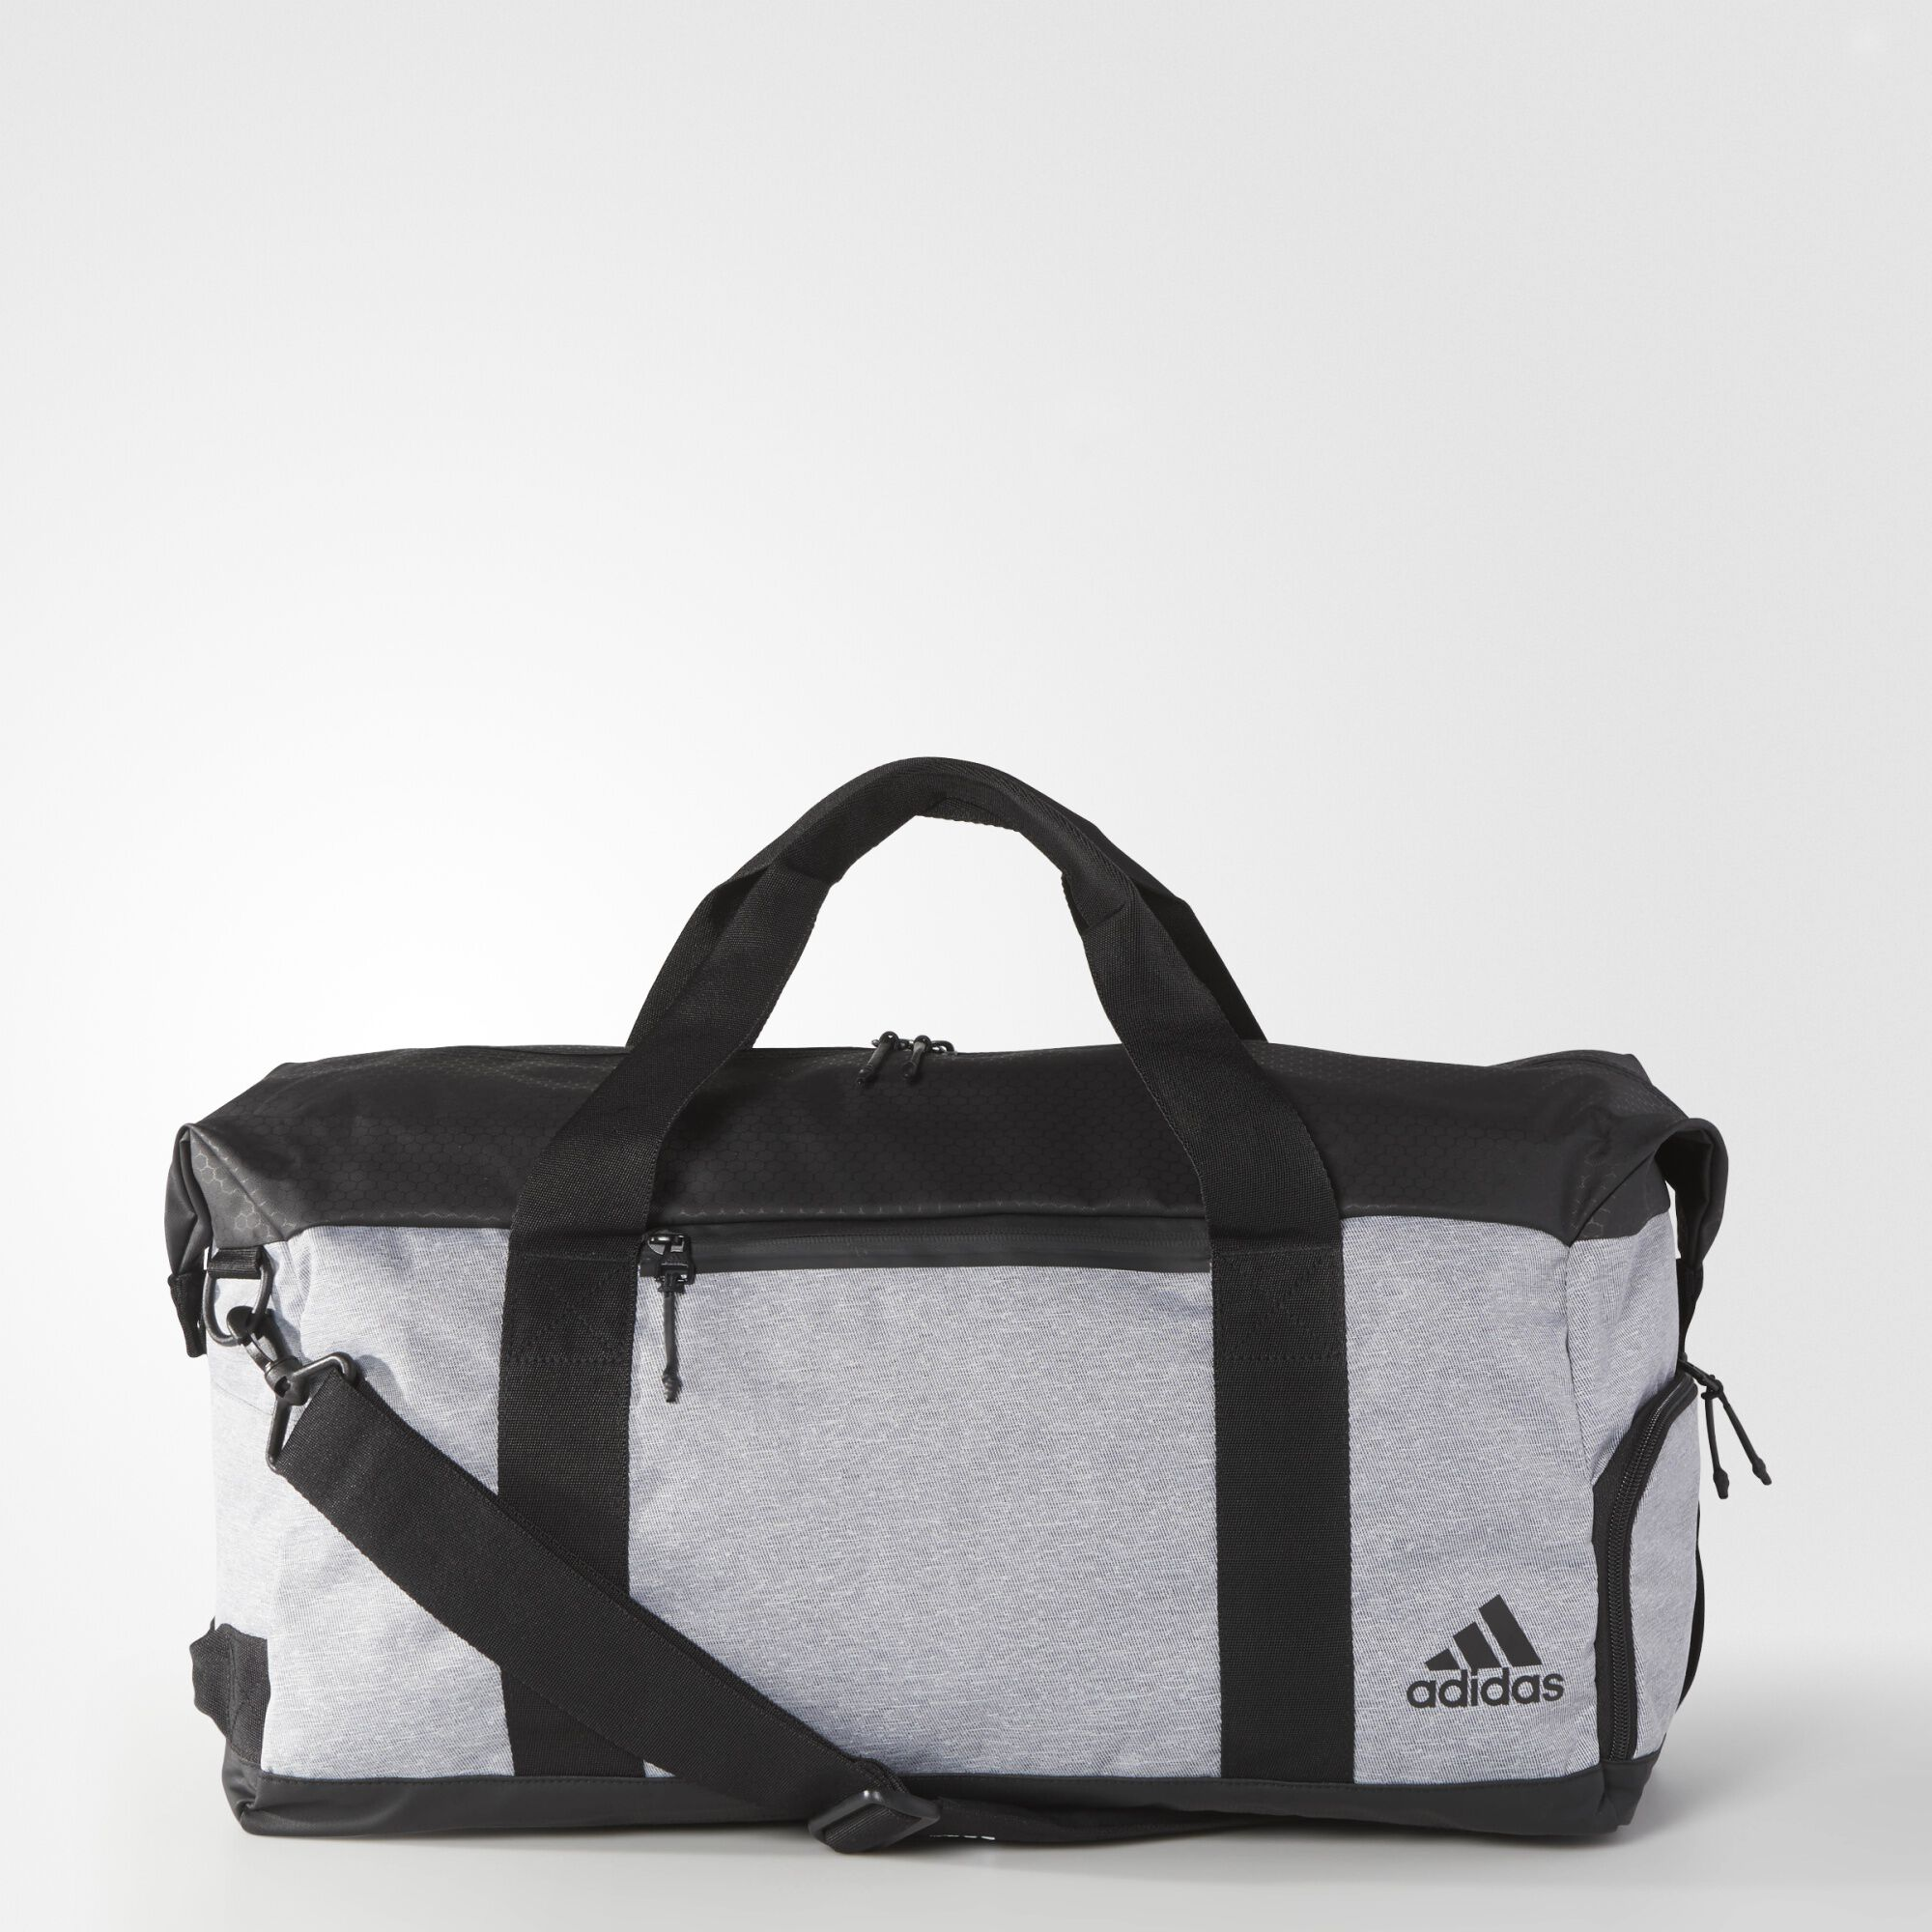 how to clean gym bag adidas